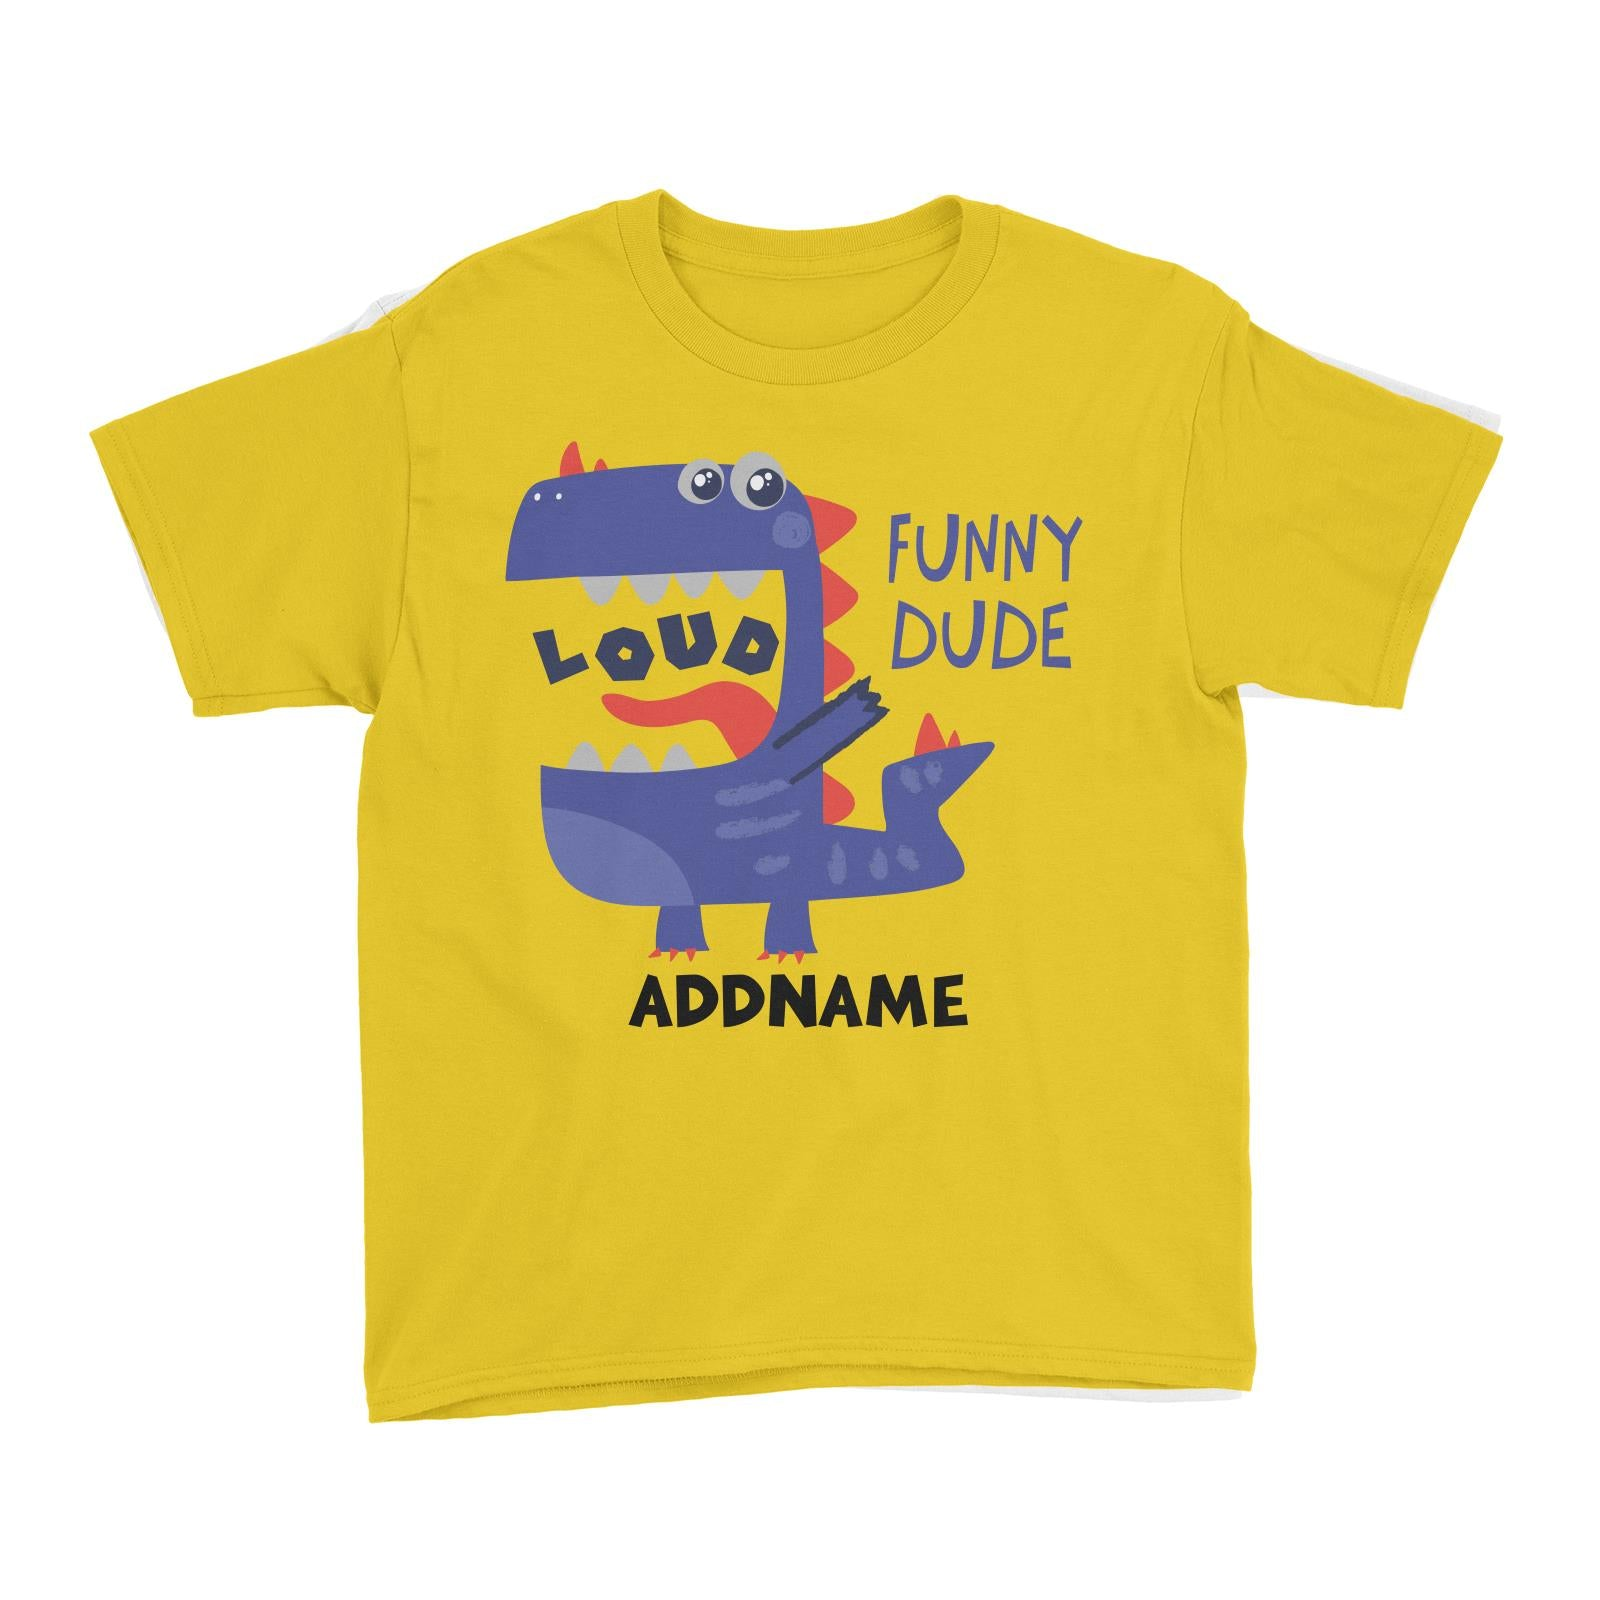 Loud Funny Dude Dinosaur Addname Kid's T-Shirt